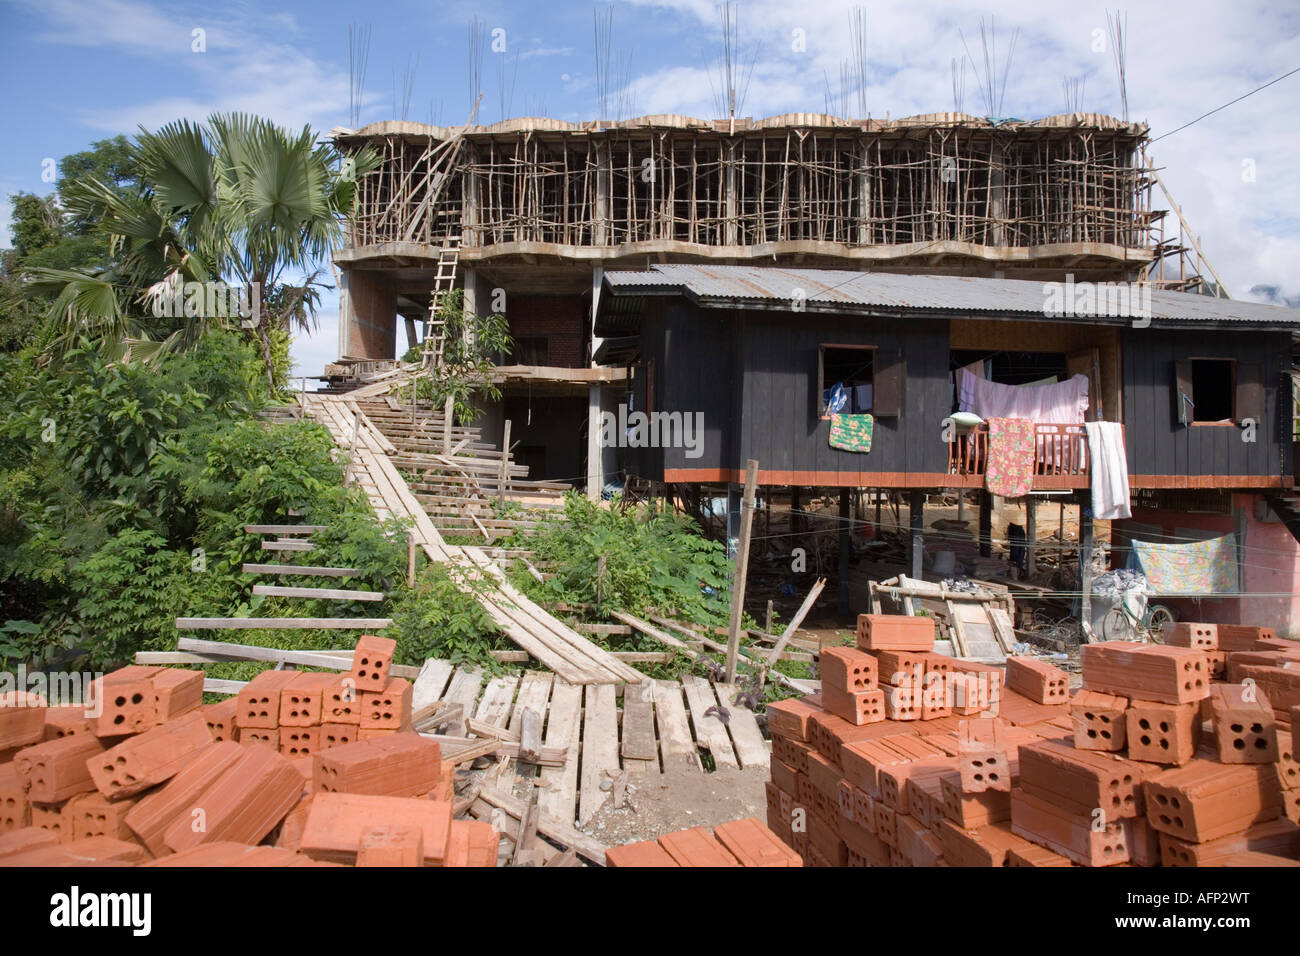 Guest House Construction : Hotel or guest house under construction in vang vieng